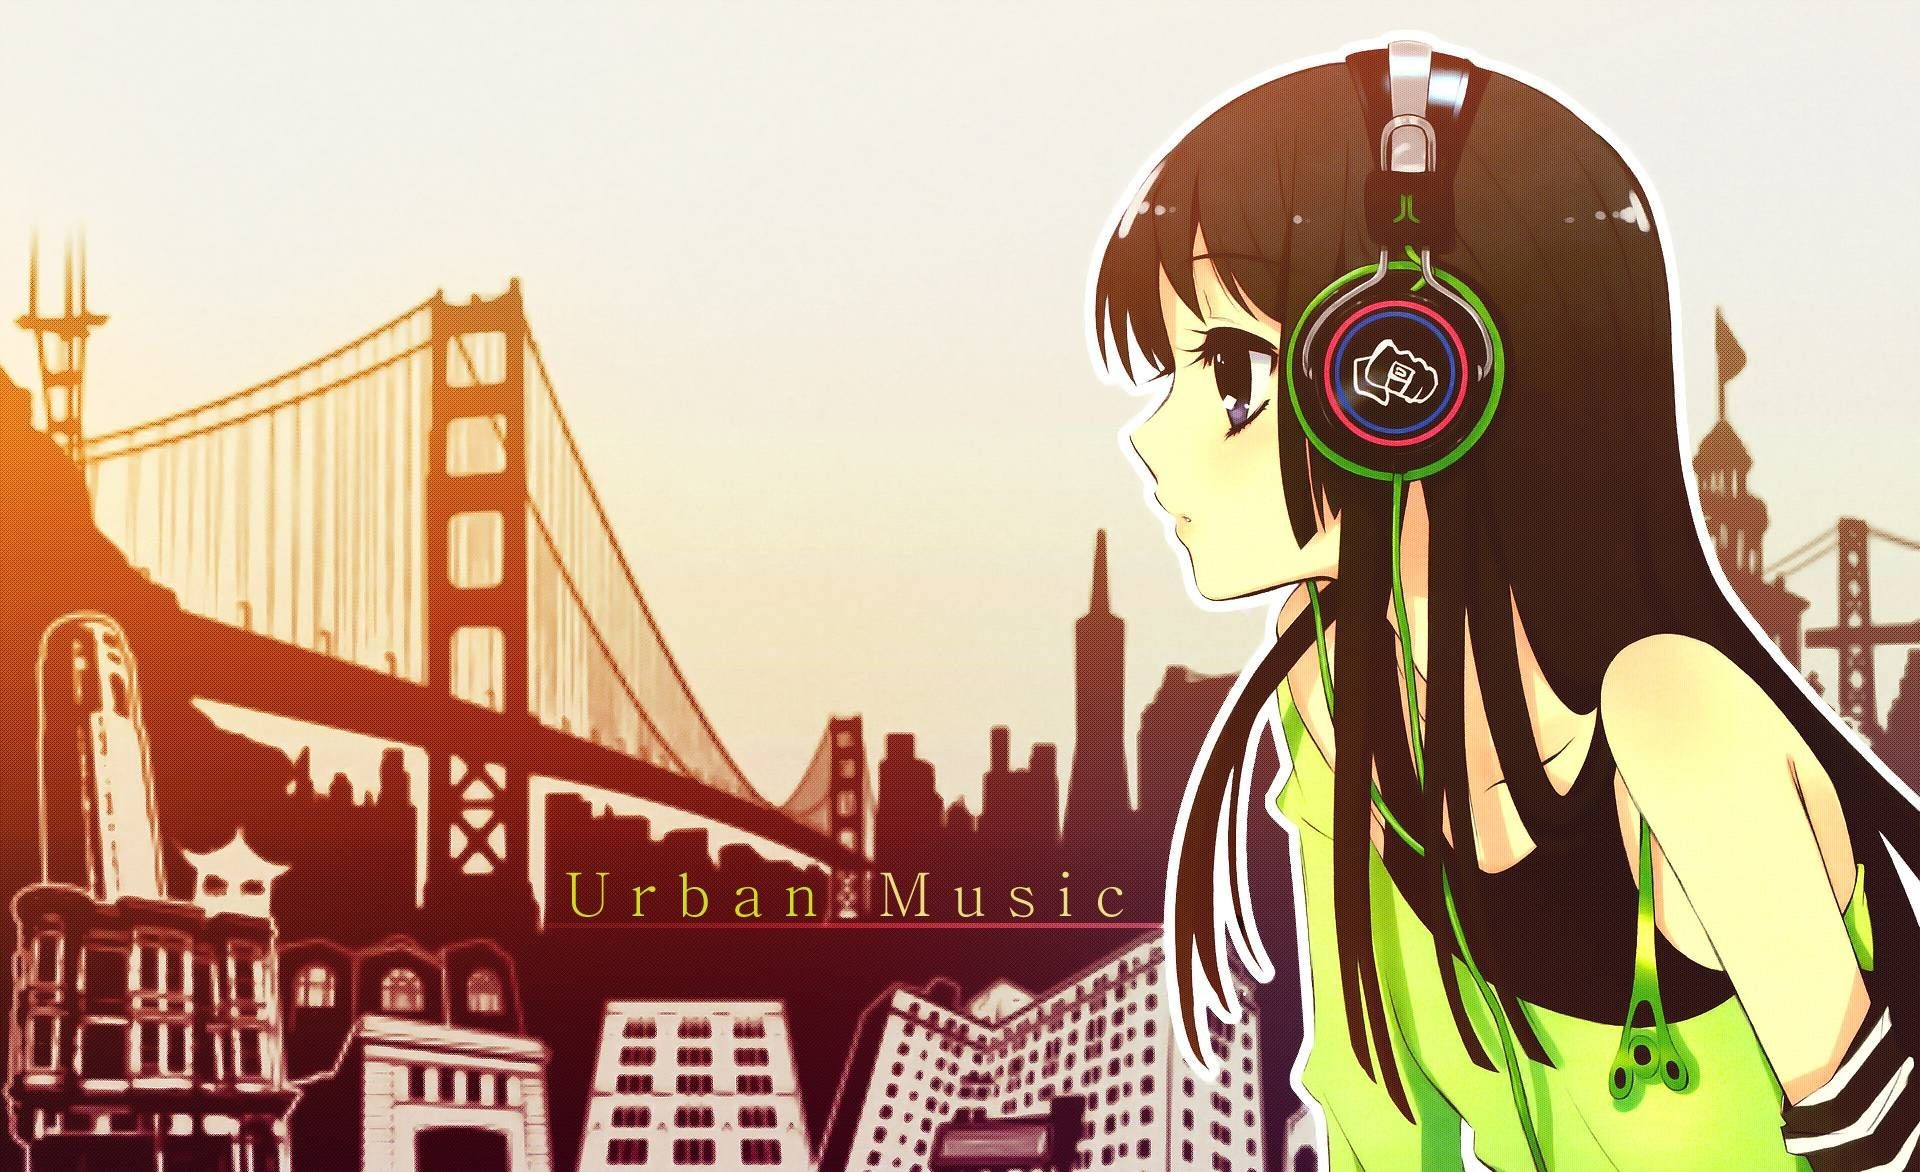 Res: 1920x1172, Anime Music Wallpaper Full HD with High Definition Wallpaper Resolution   px 316.01 KB